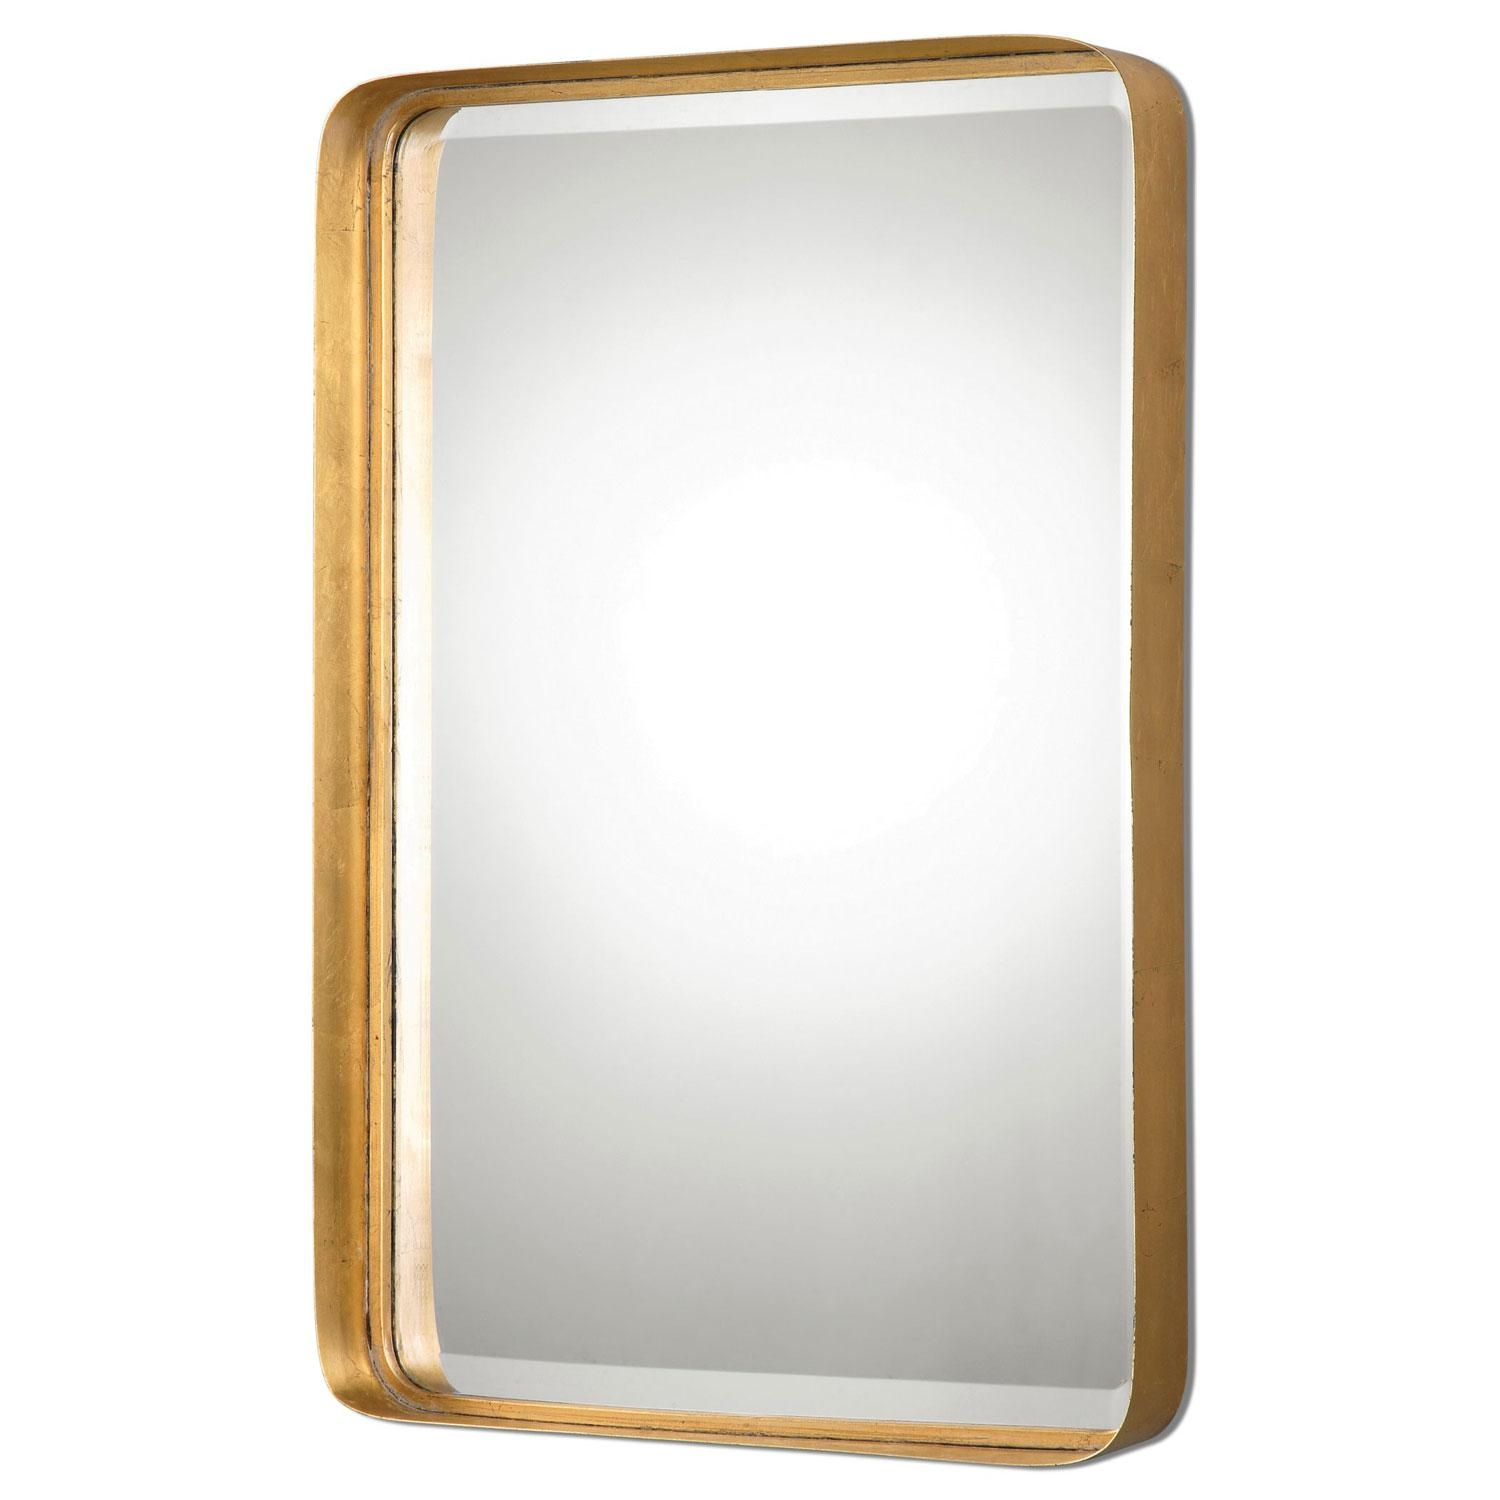 Gold Mirrors | Bellacor Regarding Extra Large Gold Mirror (Image 12 of 20)